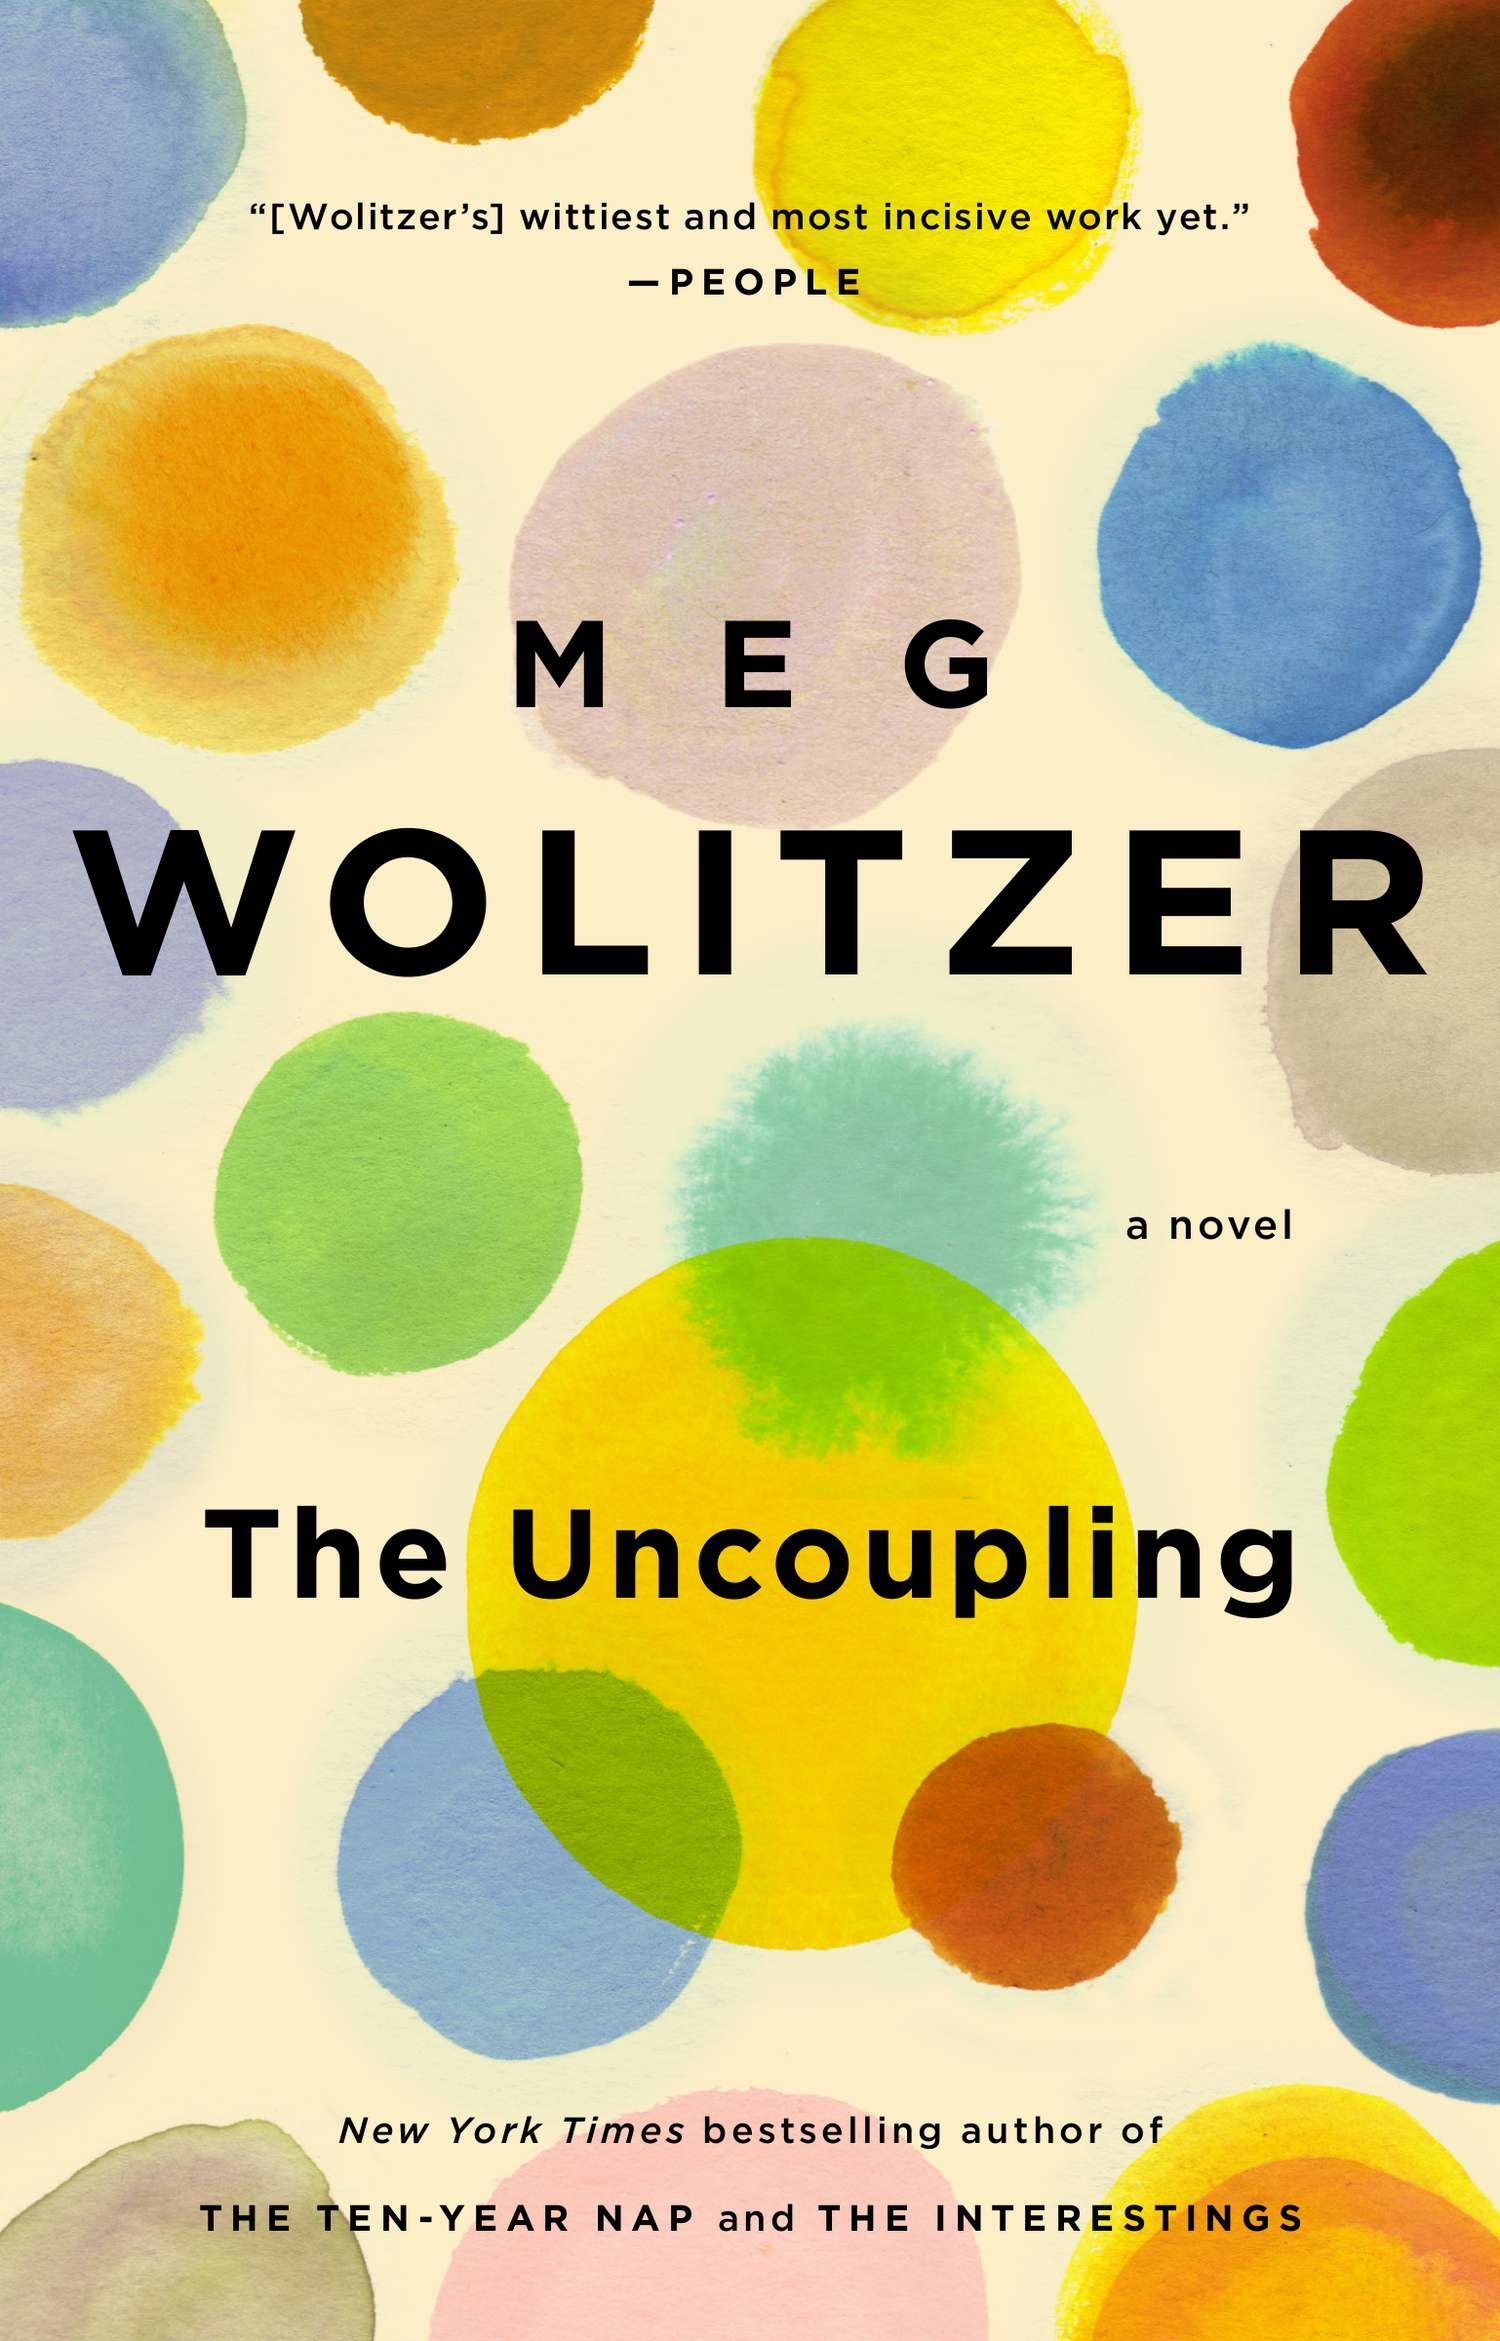 The uncoupling cover image